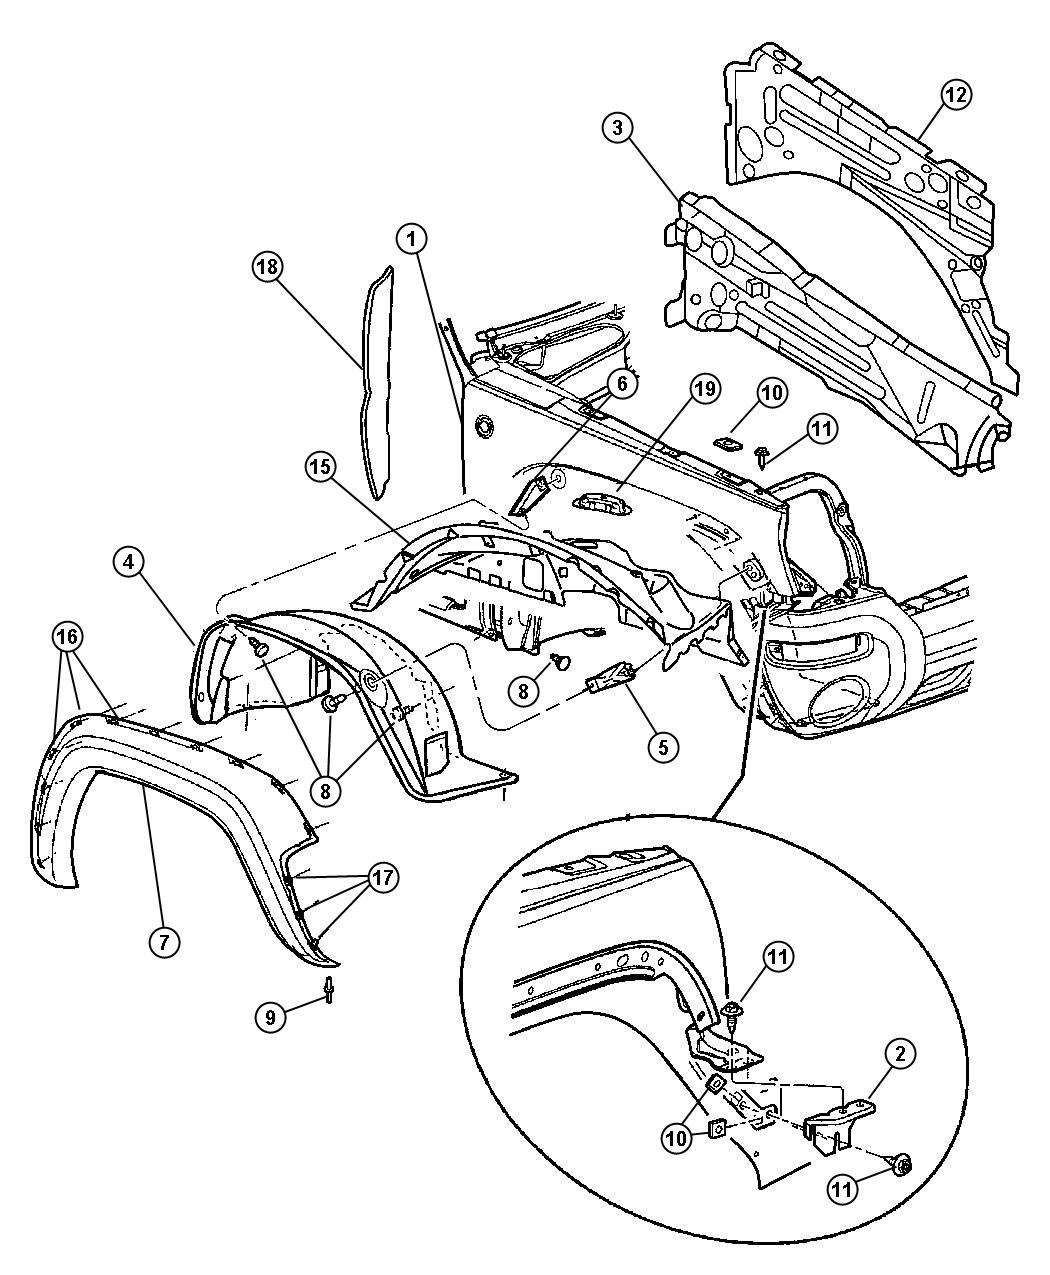 Jeep Grand Cherokee Parts Diagram Jeep Auto Wiring